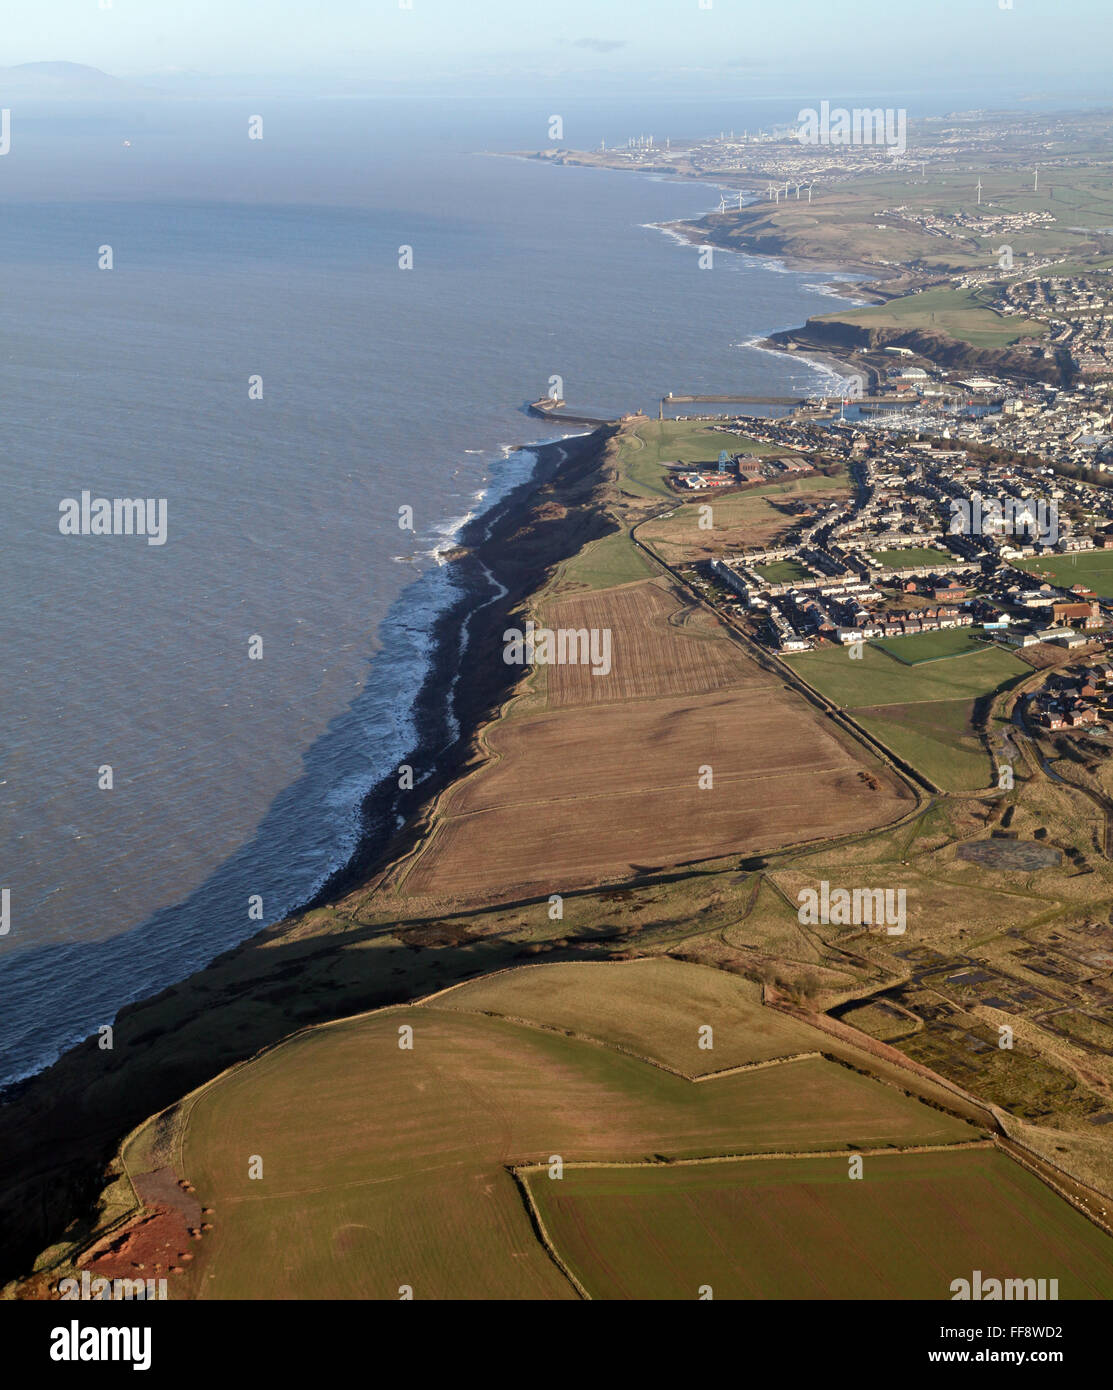 aerial view of the Cumbrian coast near Whitehaven, Cumbria, UK - Stock Image